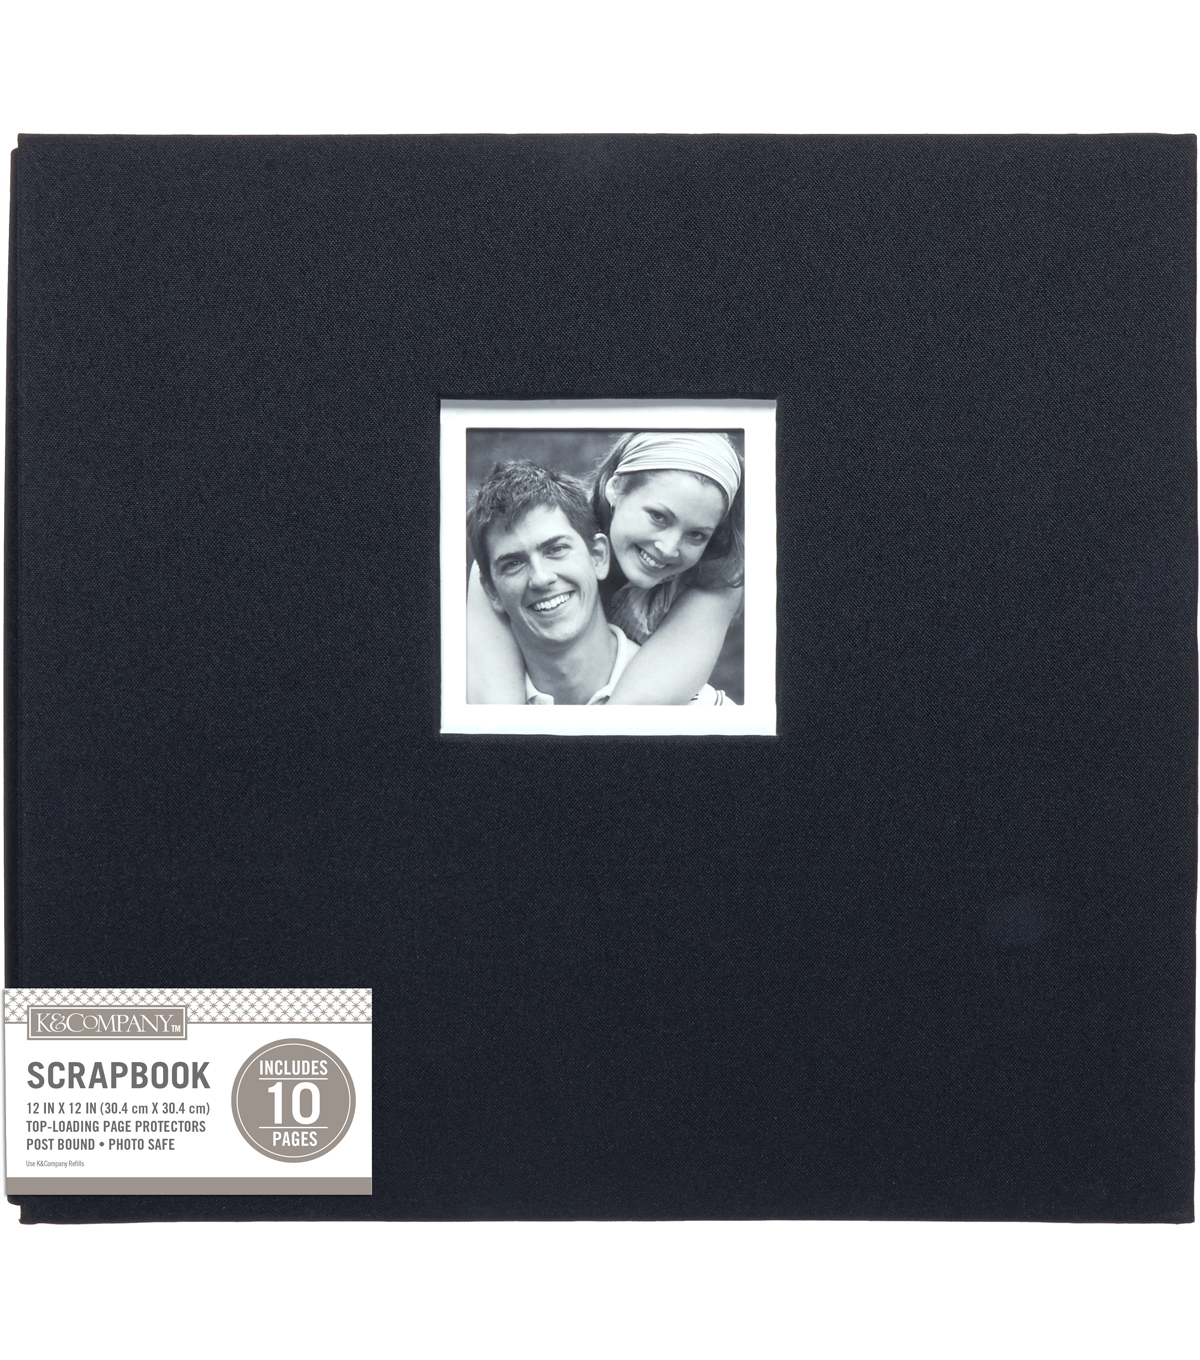 "K&Company Black Fabric 12""x12"" Window Scrapbook"